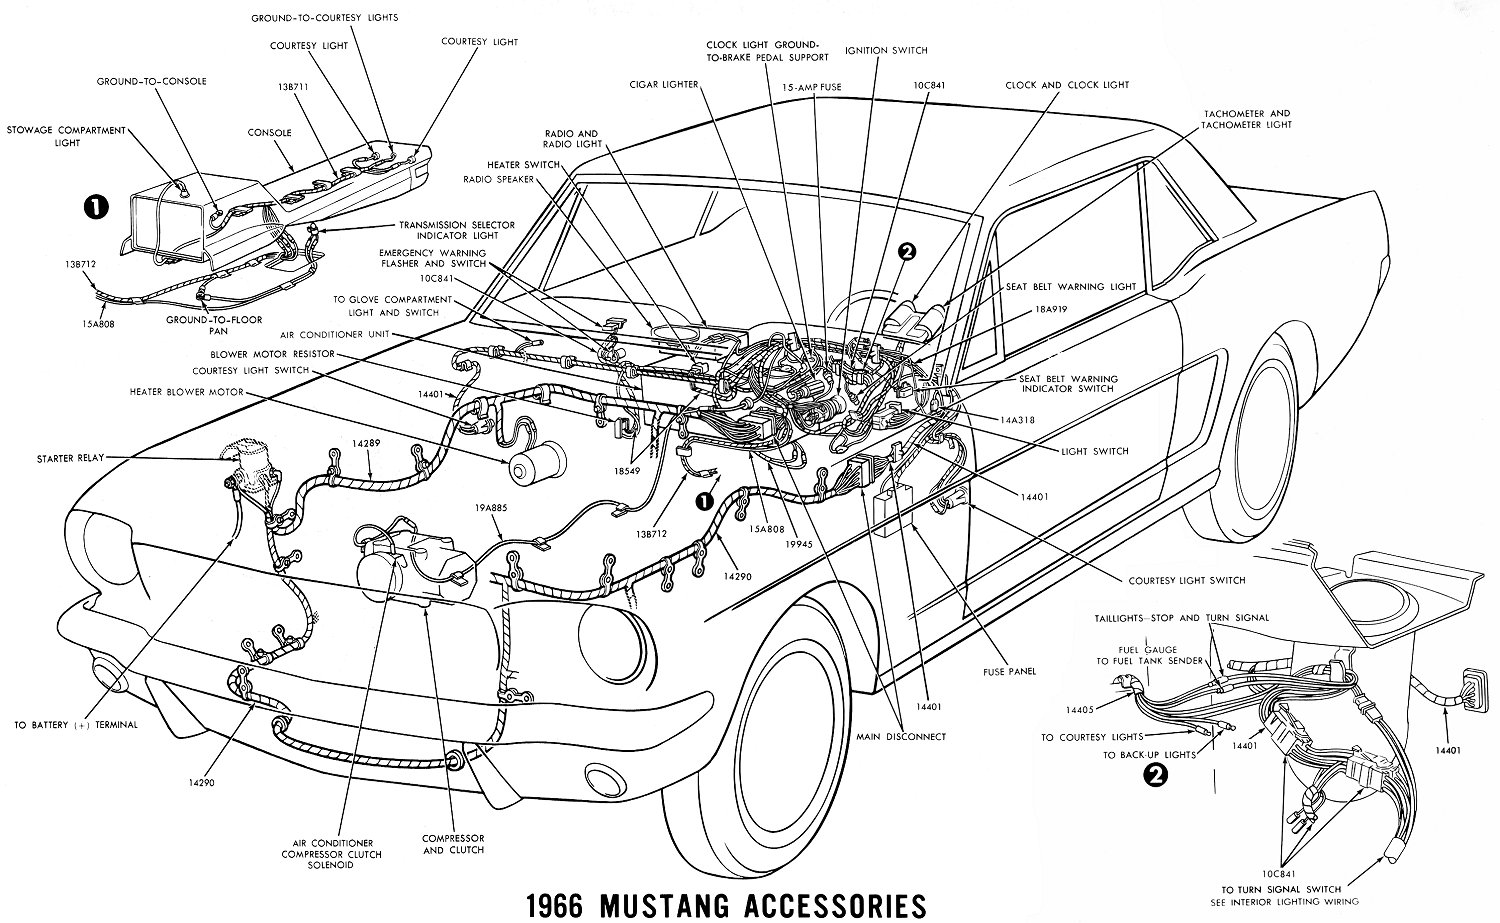 66acces 1966 mustang wiring diagrams average joe restoration 1966 mustang fog light wiring diagram at bakdesigns.co